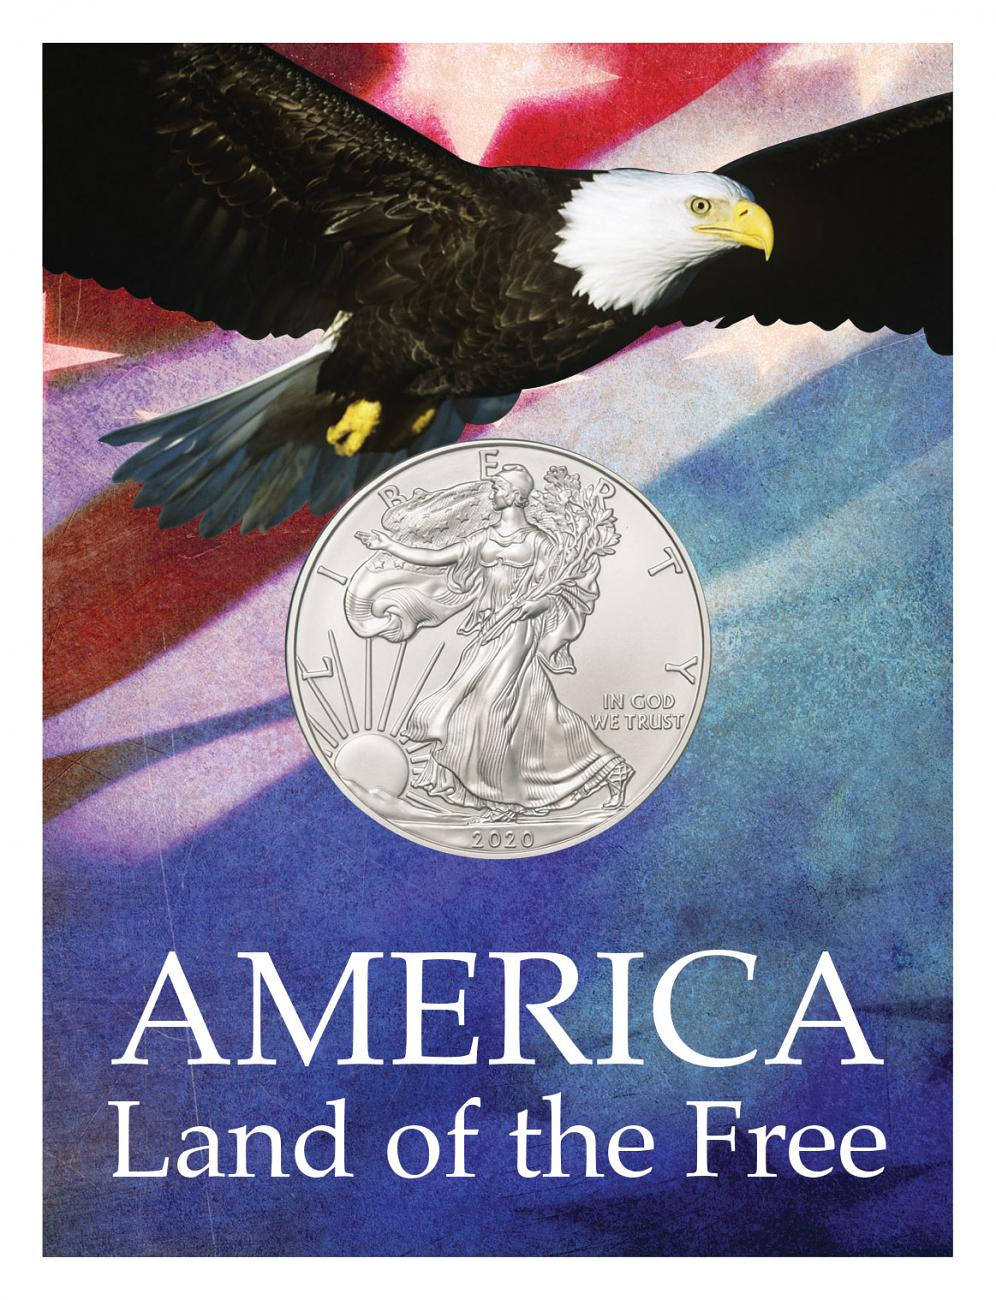 2020 1 oz. American Silver Eagle $1 Coin Patriotic Land of the Free Coin Card GEM BU